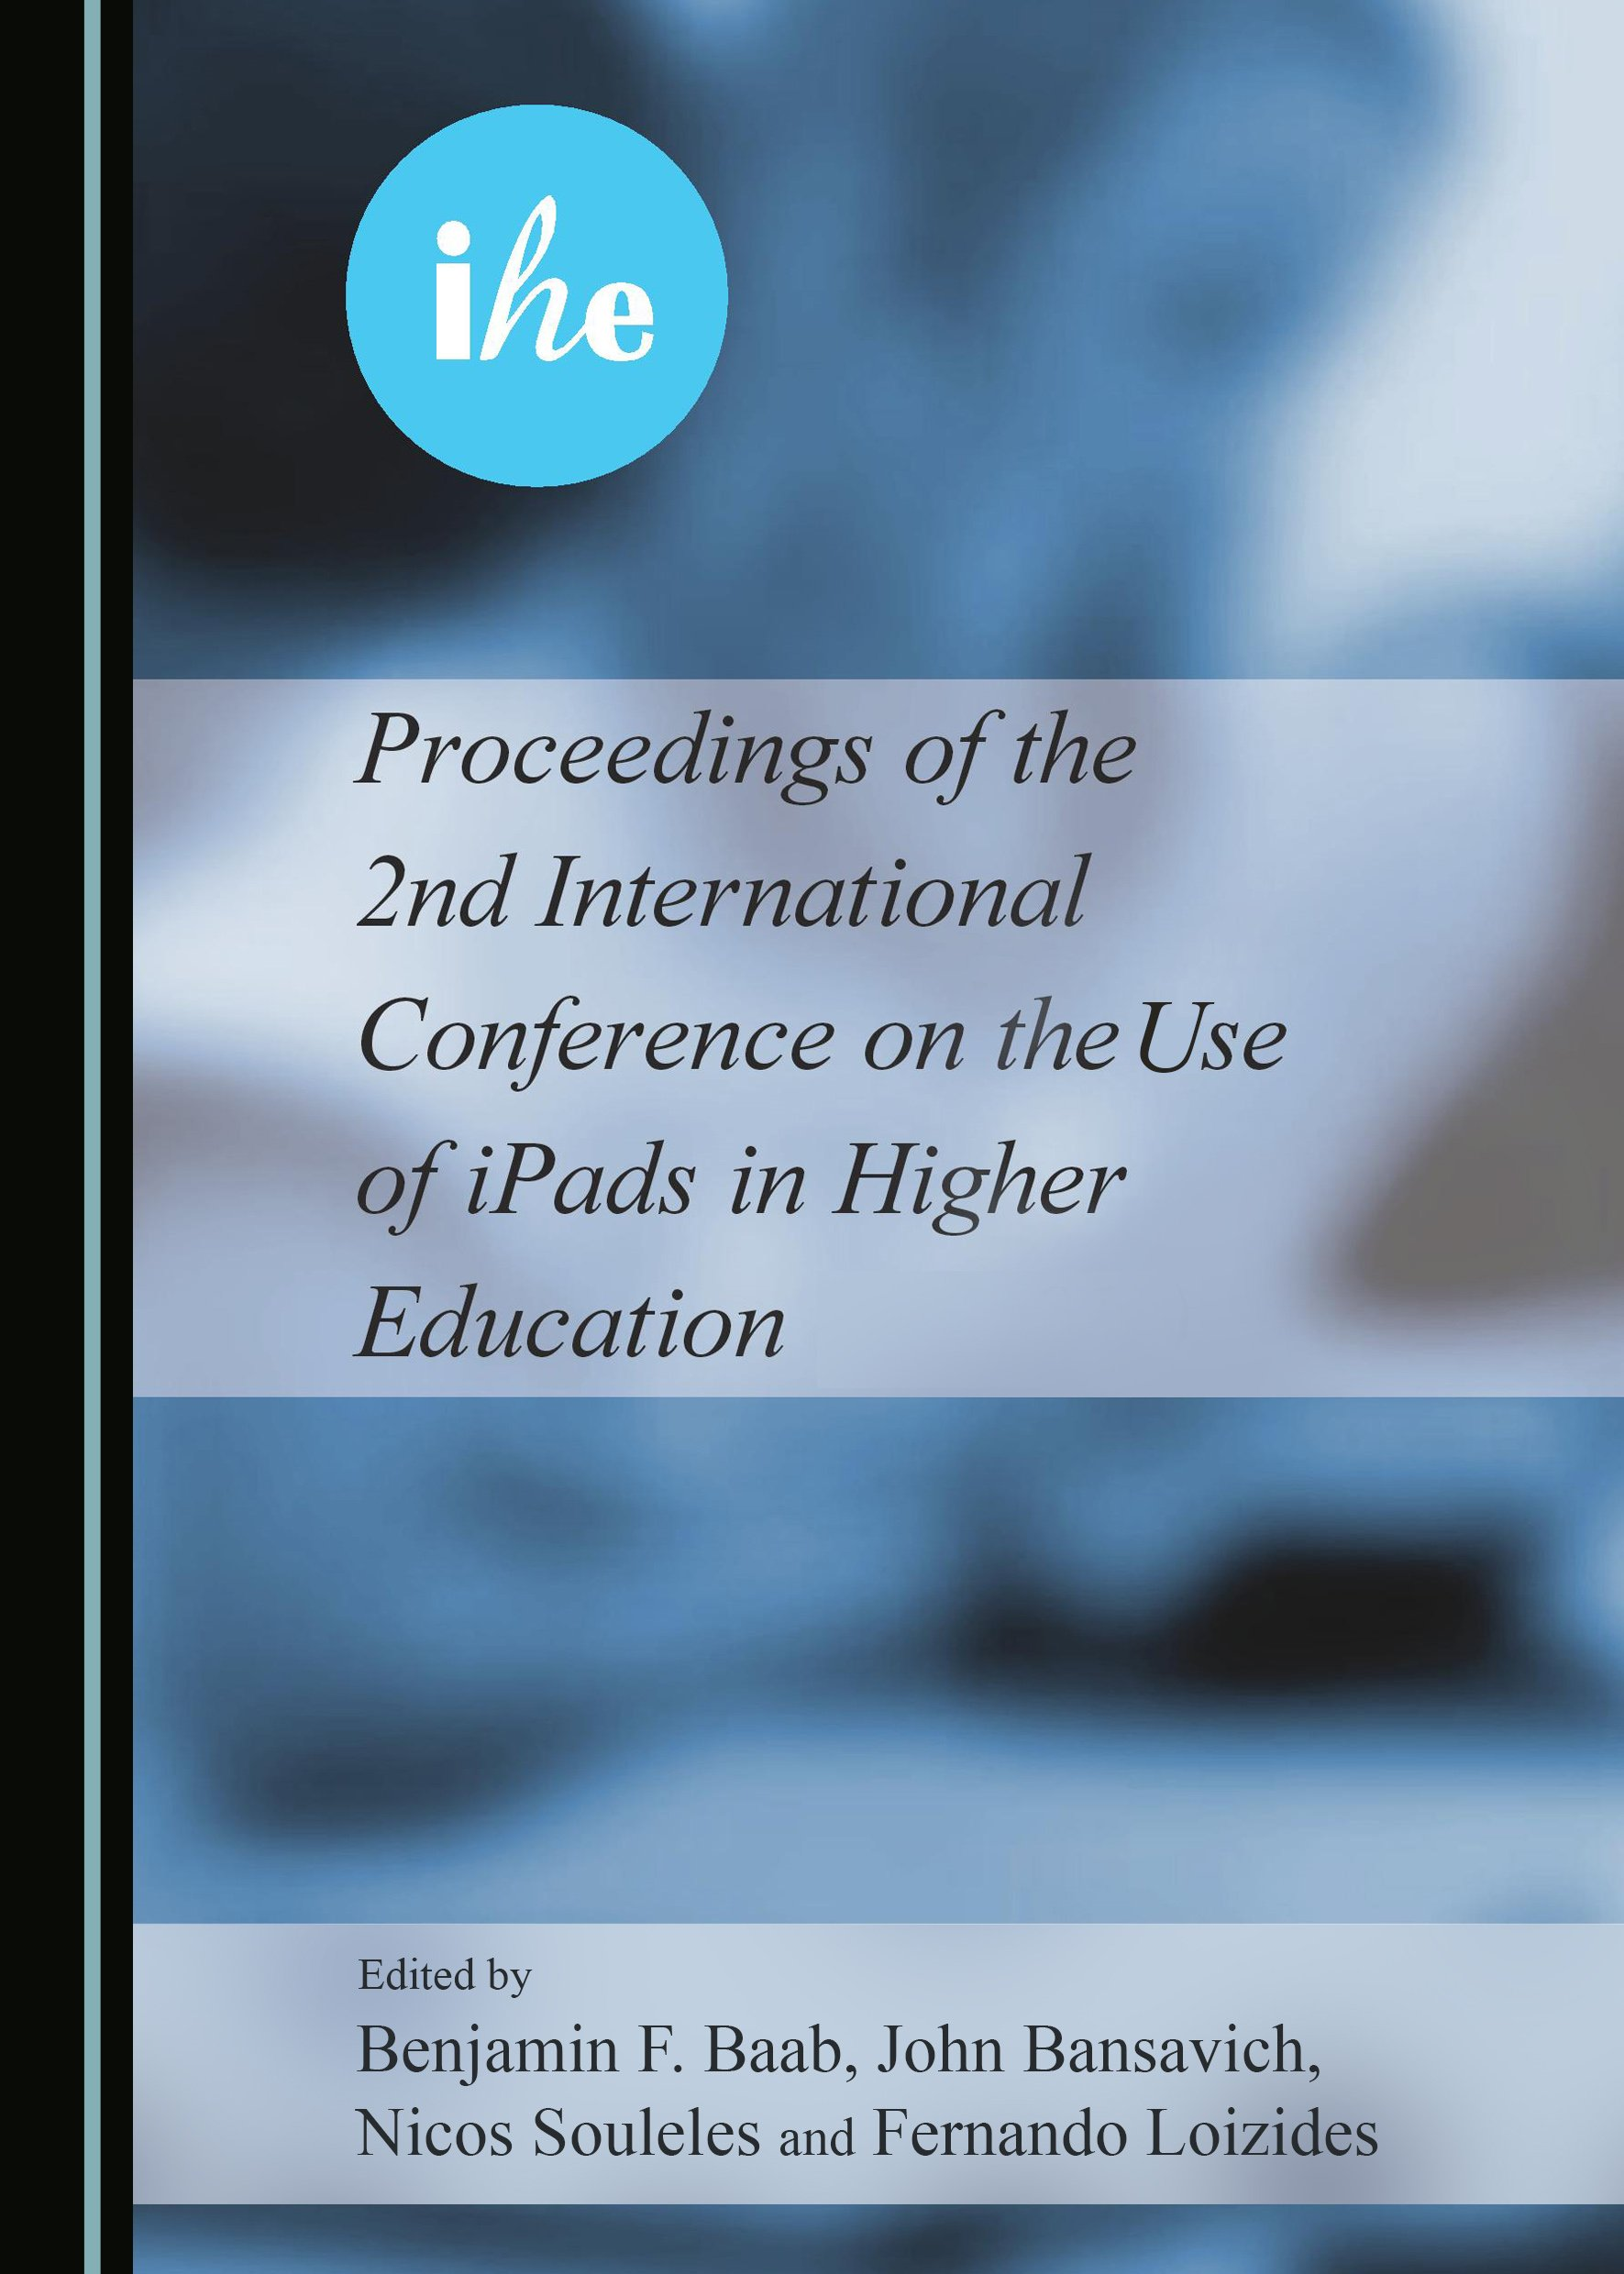 Proceedings of the 2nd International Conference on the Use of iPads in Higher Education